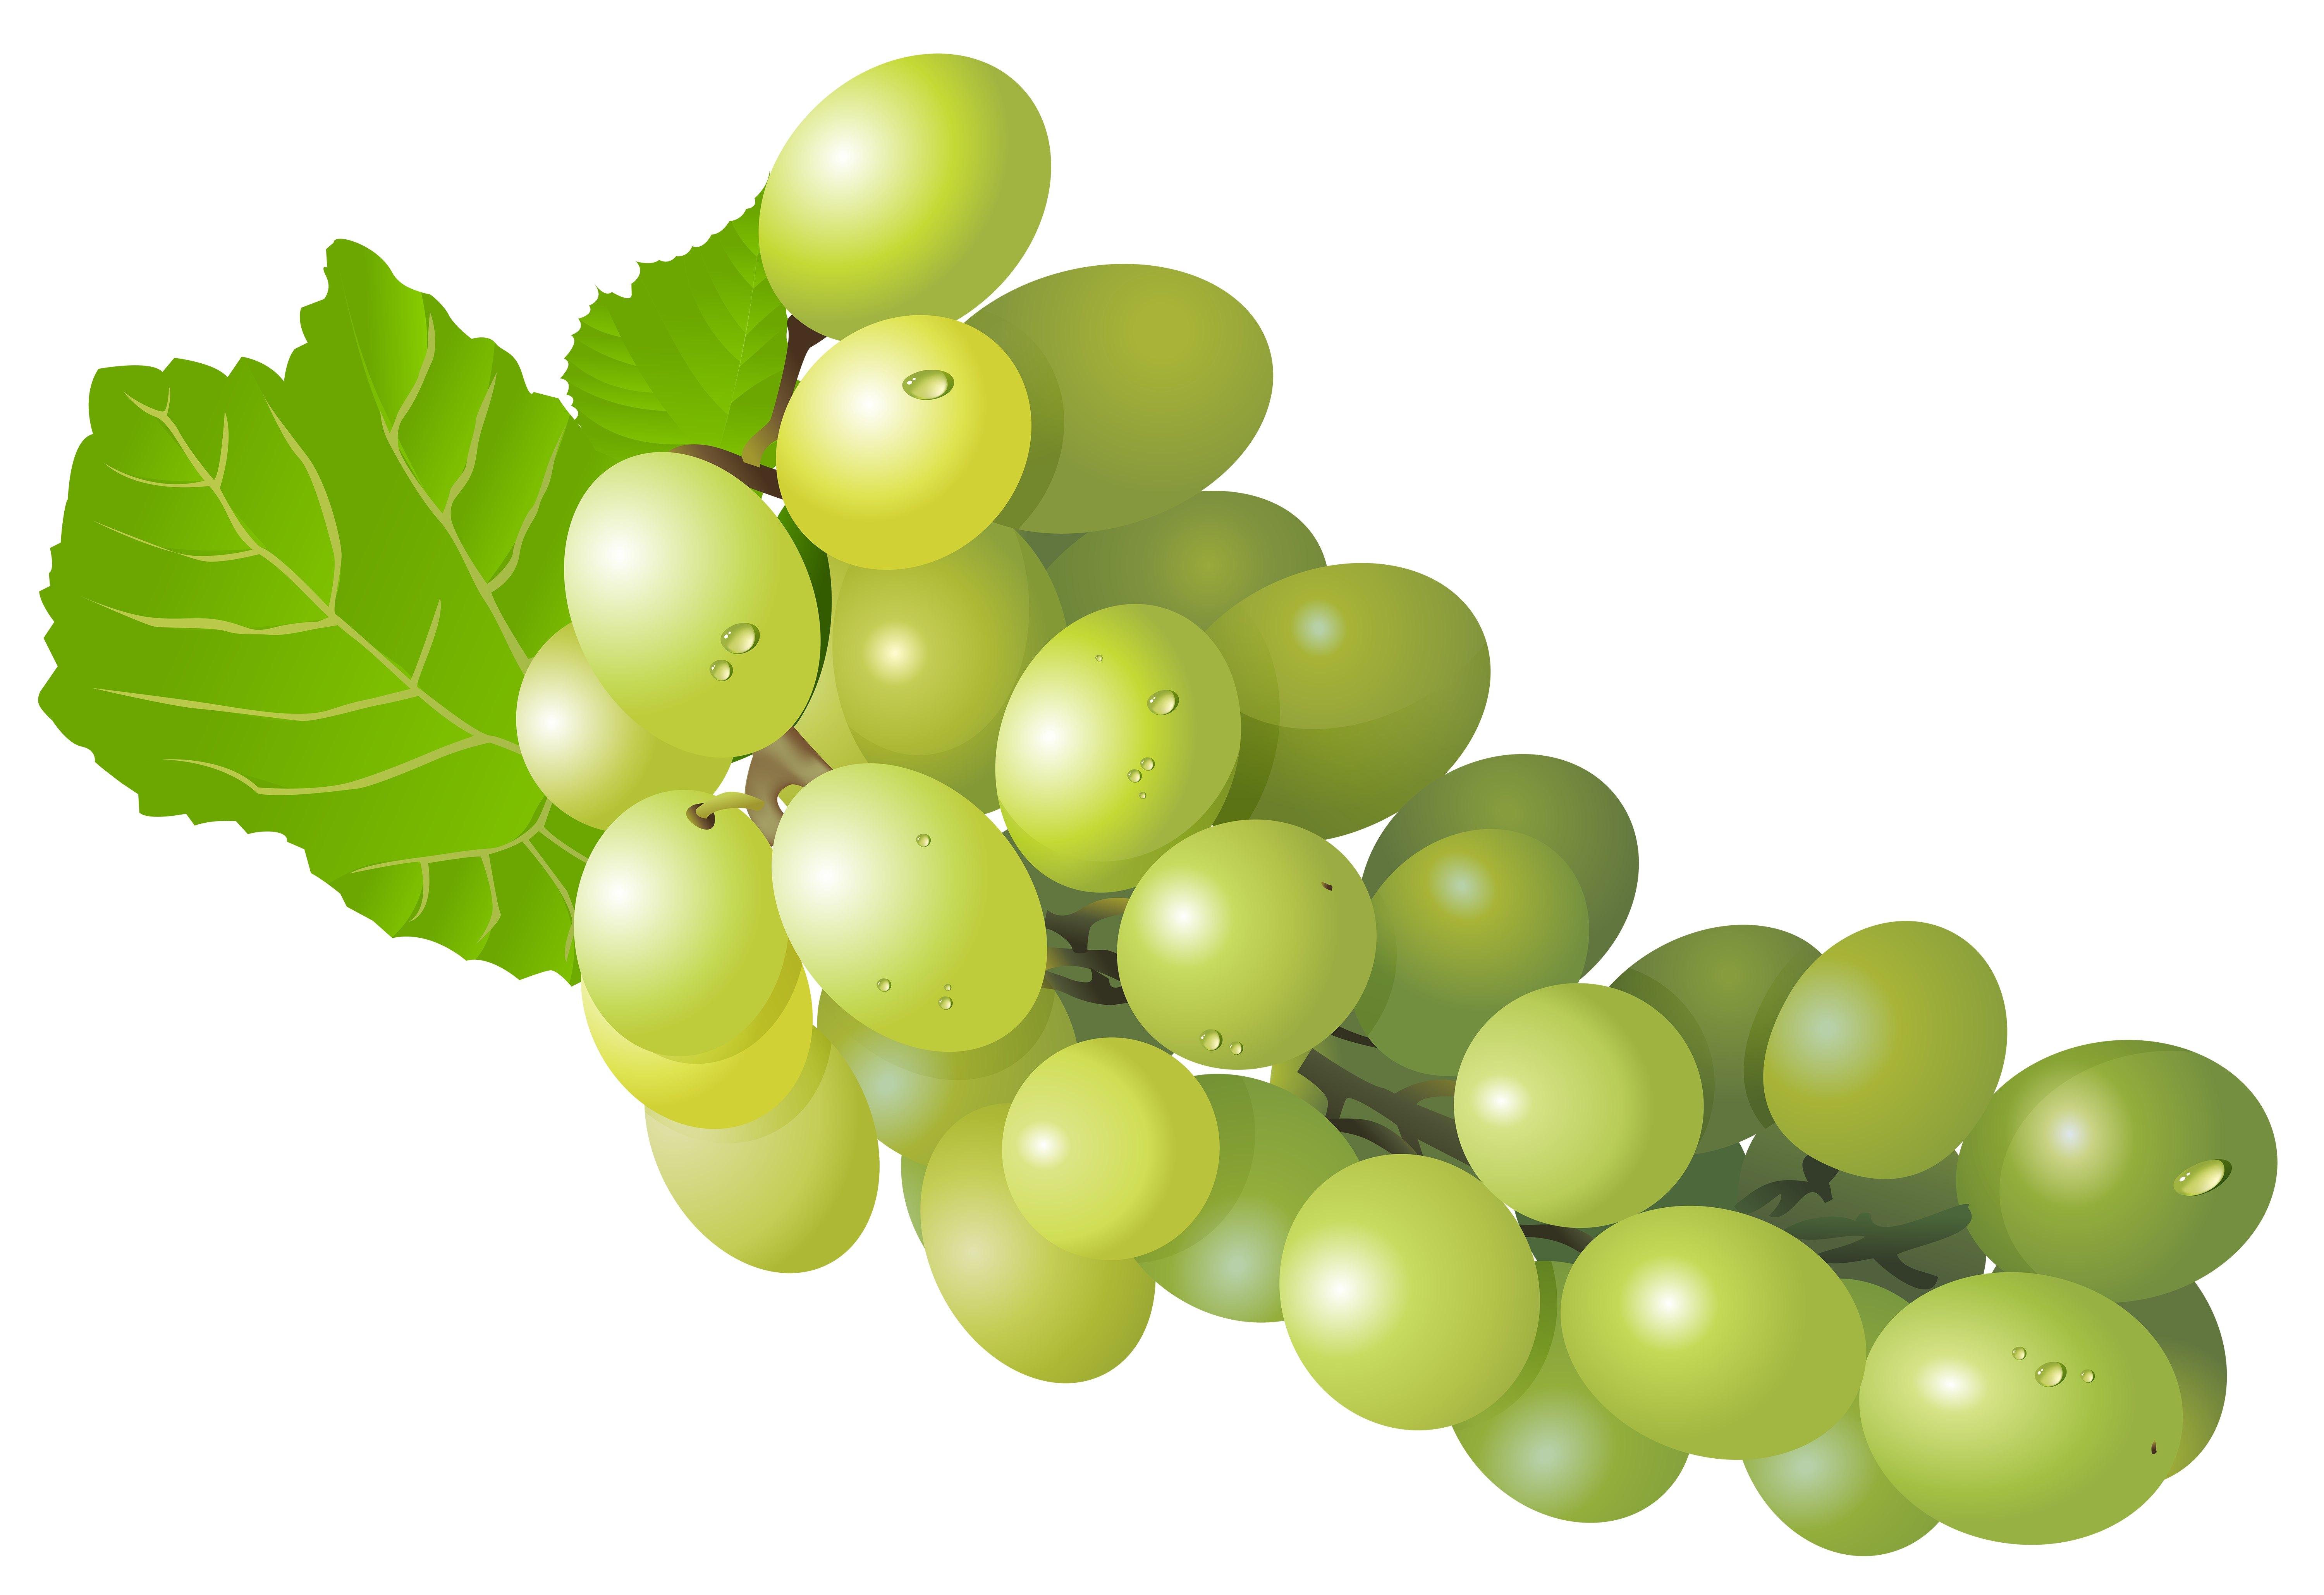 Grape png free clip. Transparent grapes high quality clipart free stock